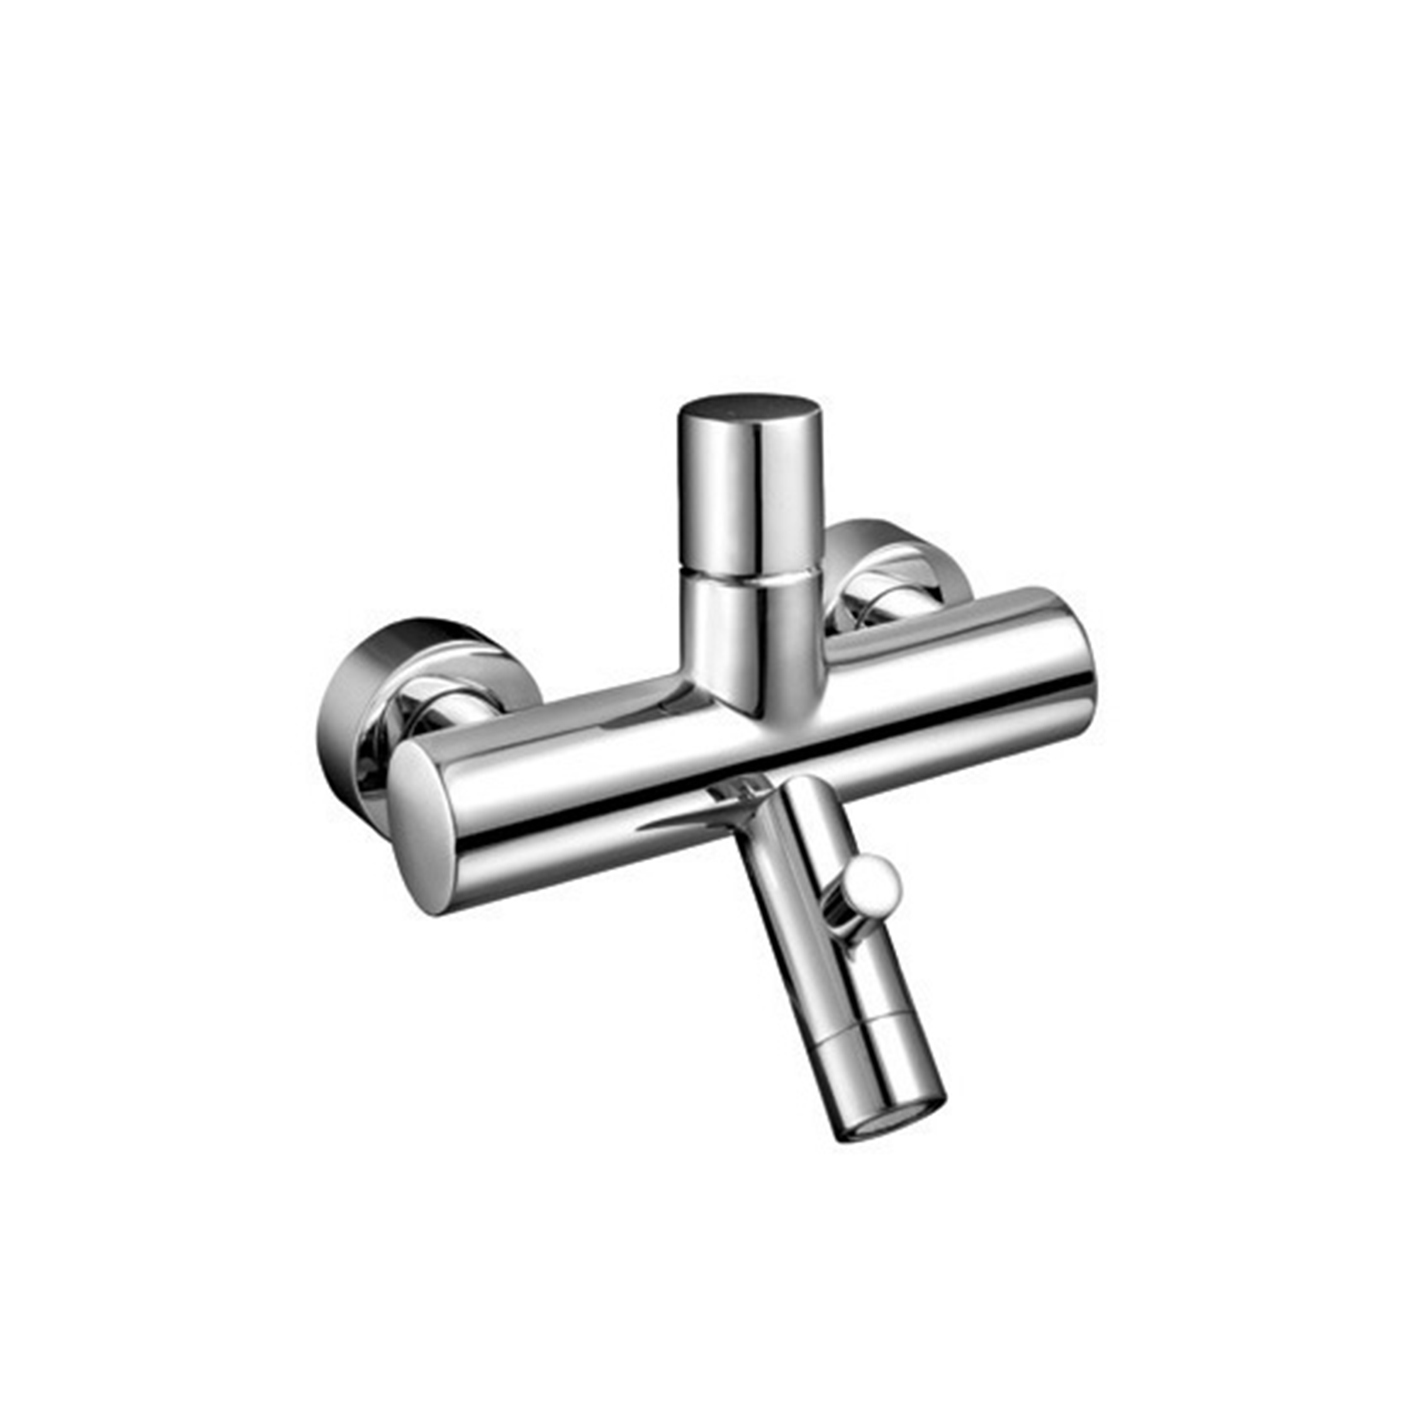 Art 1618 nostromo bath filler